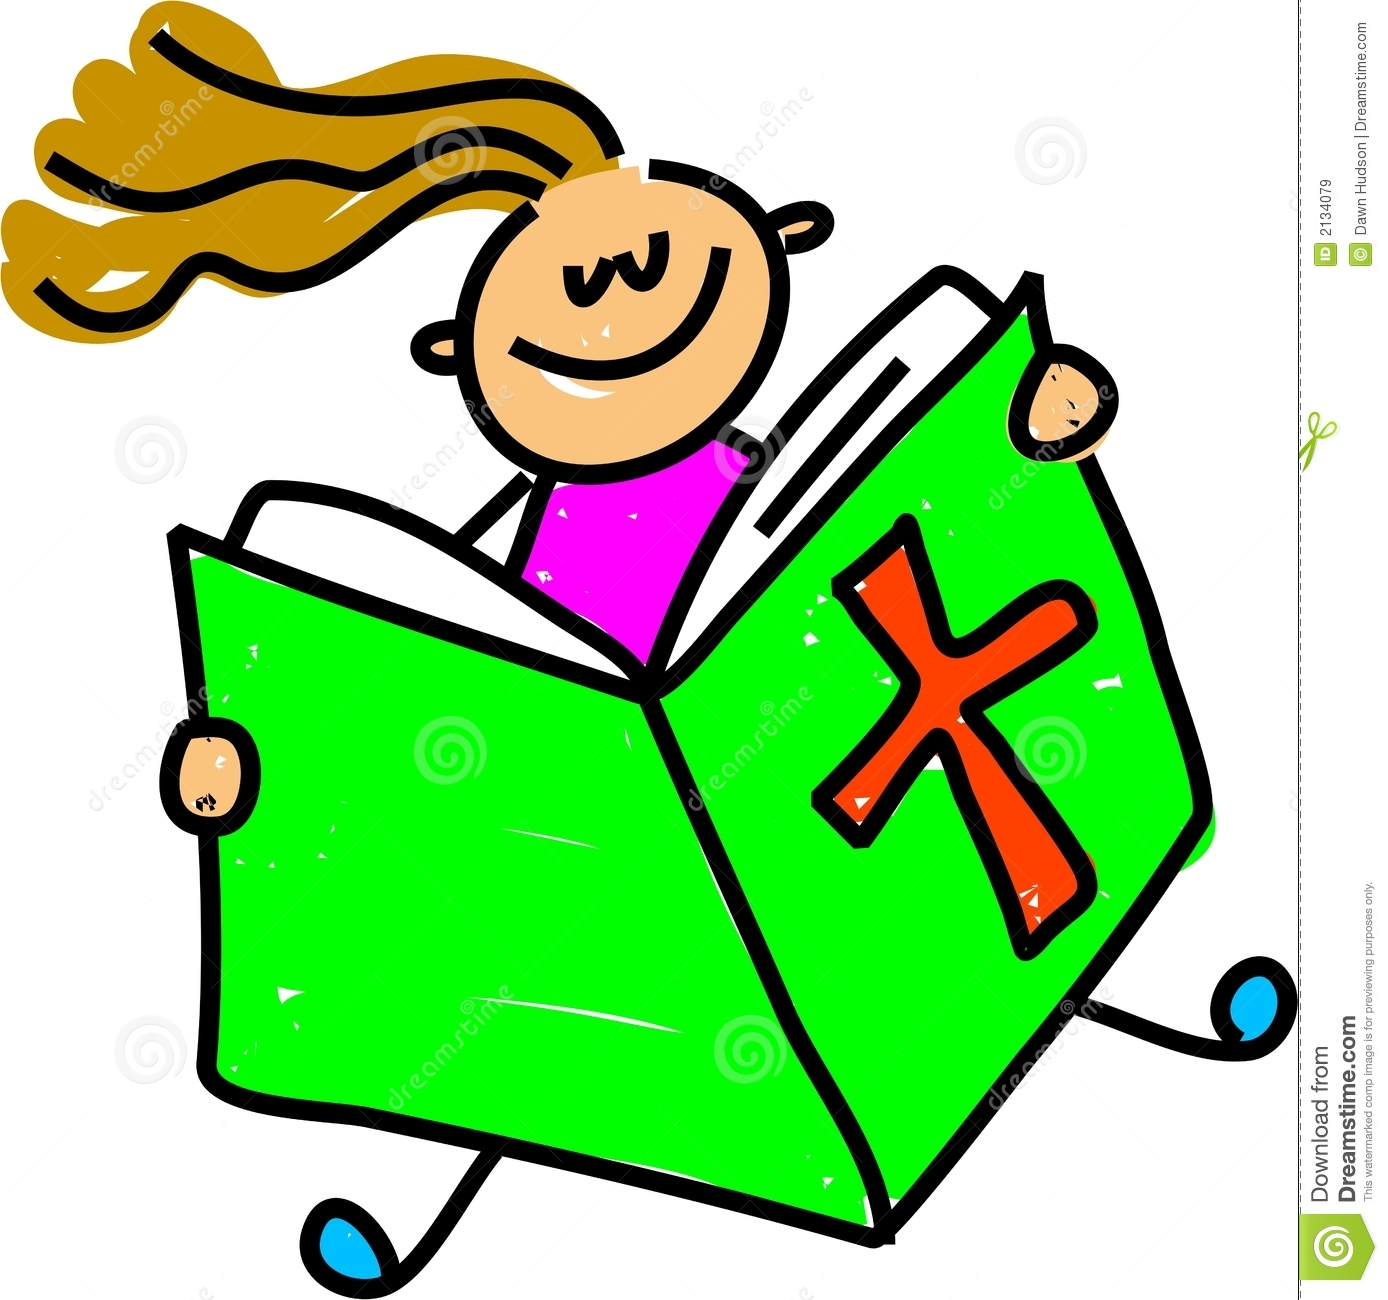 Kids bible clipart 6 » Clipart Station.